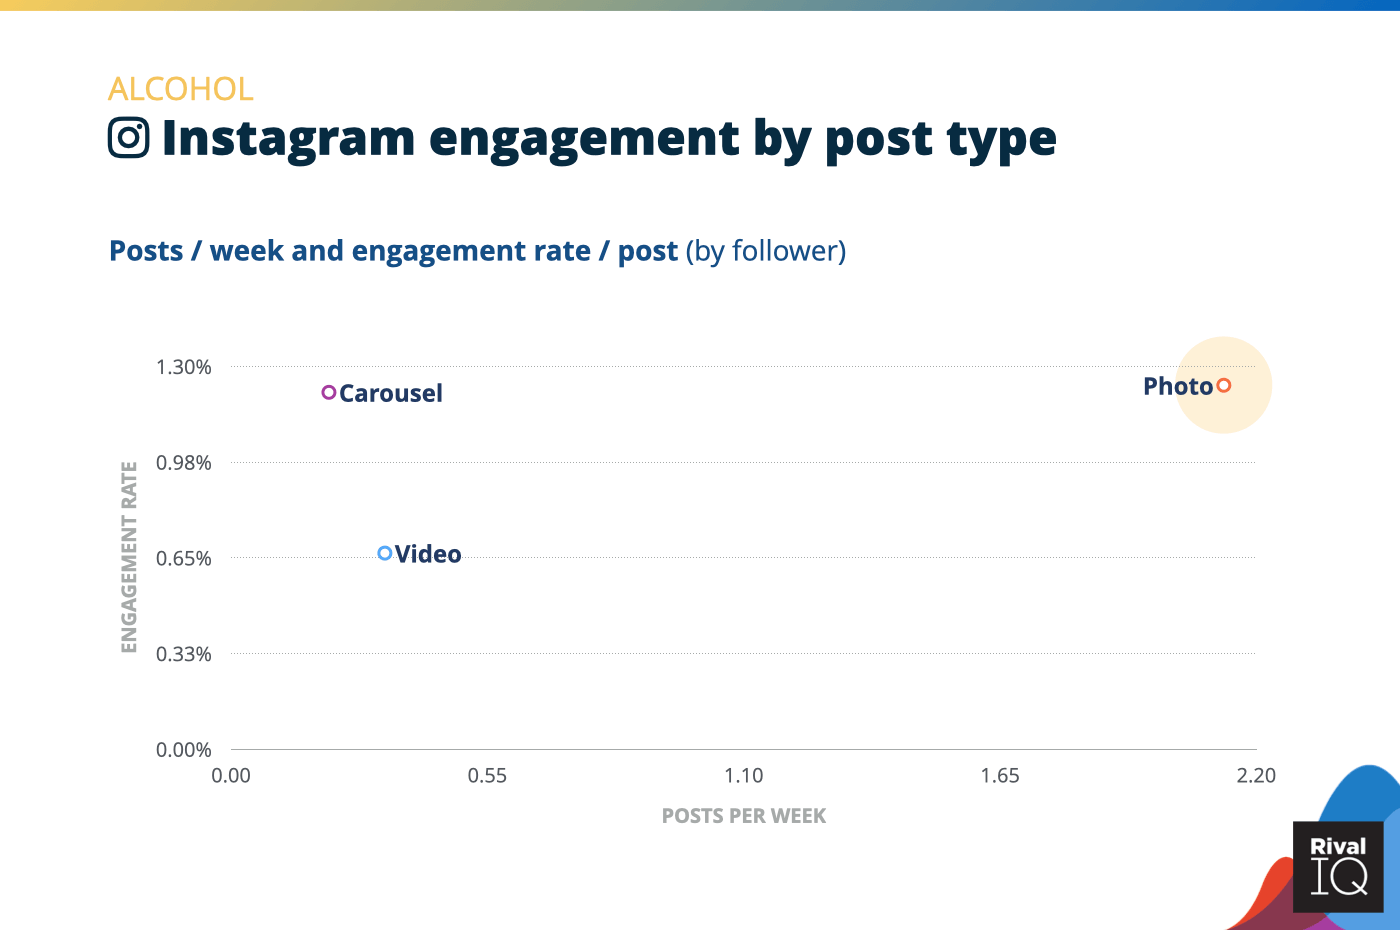 Chart of Instagram posts per week and engagement rate by post type, Alcohol